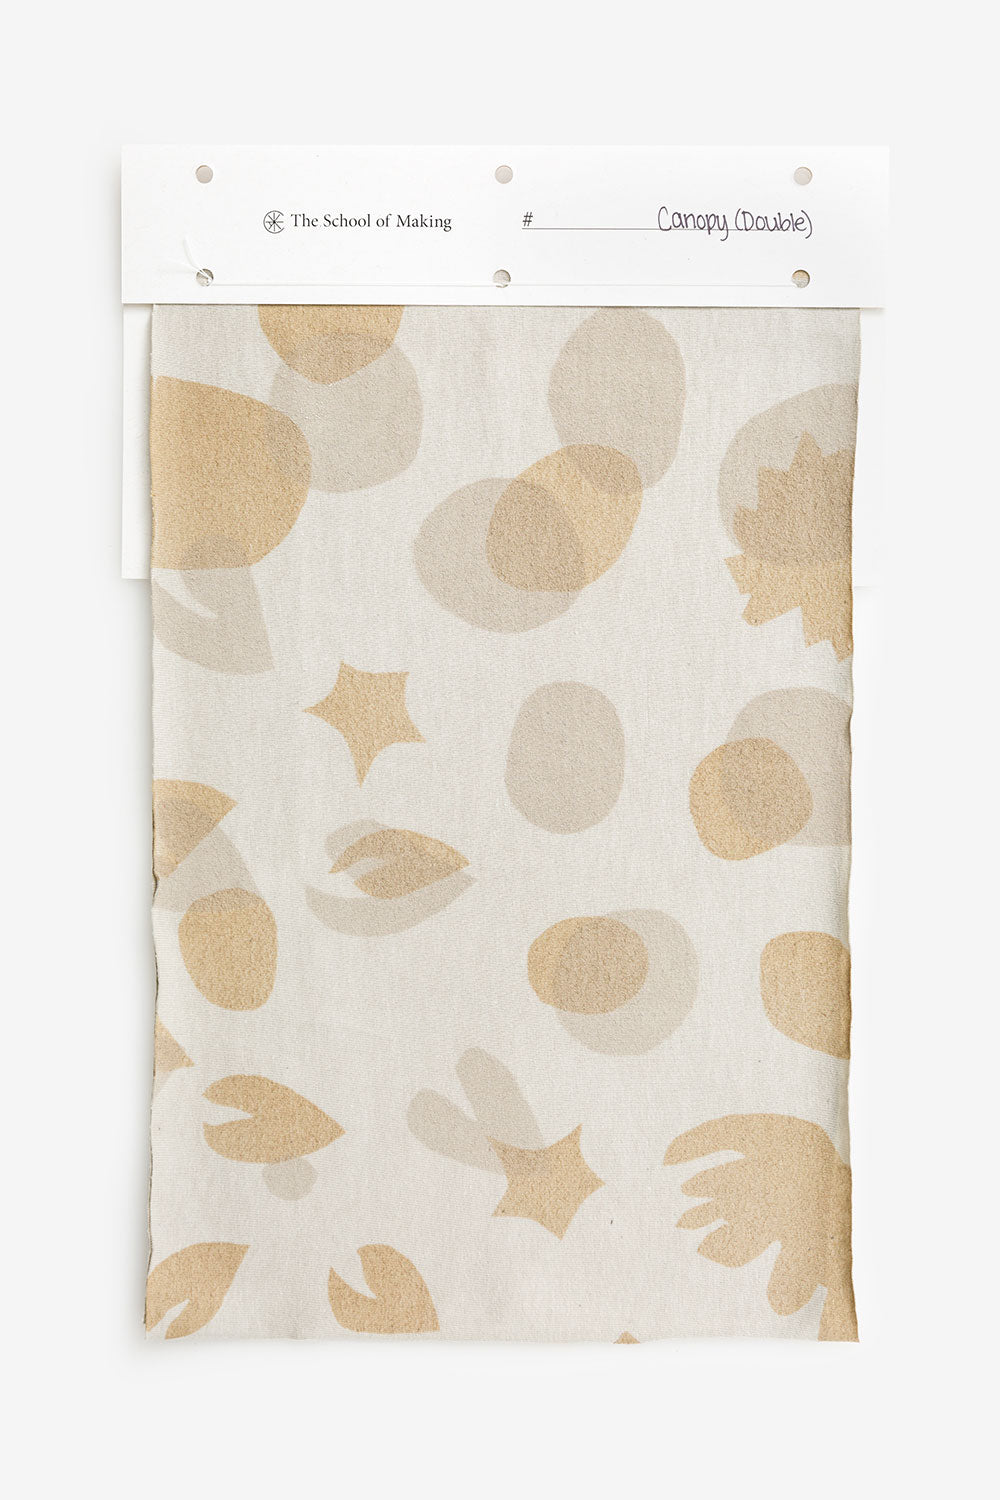 The School of Making Mylar Canopy Stencil for Hand Sewn Embroidery DIY Kits